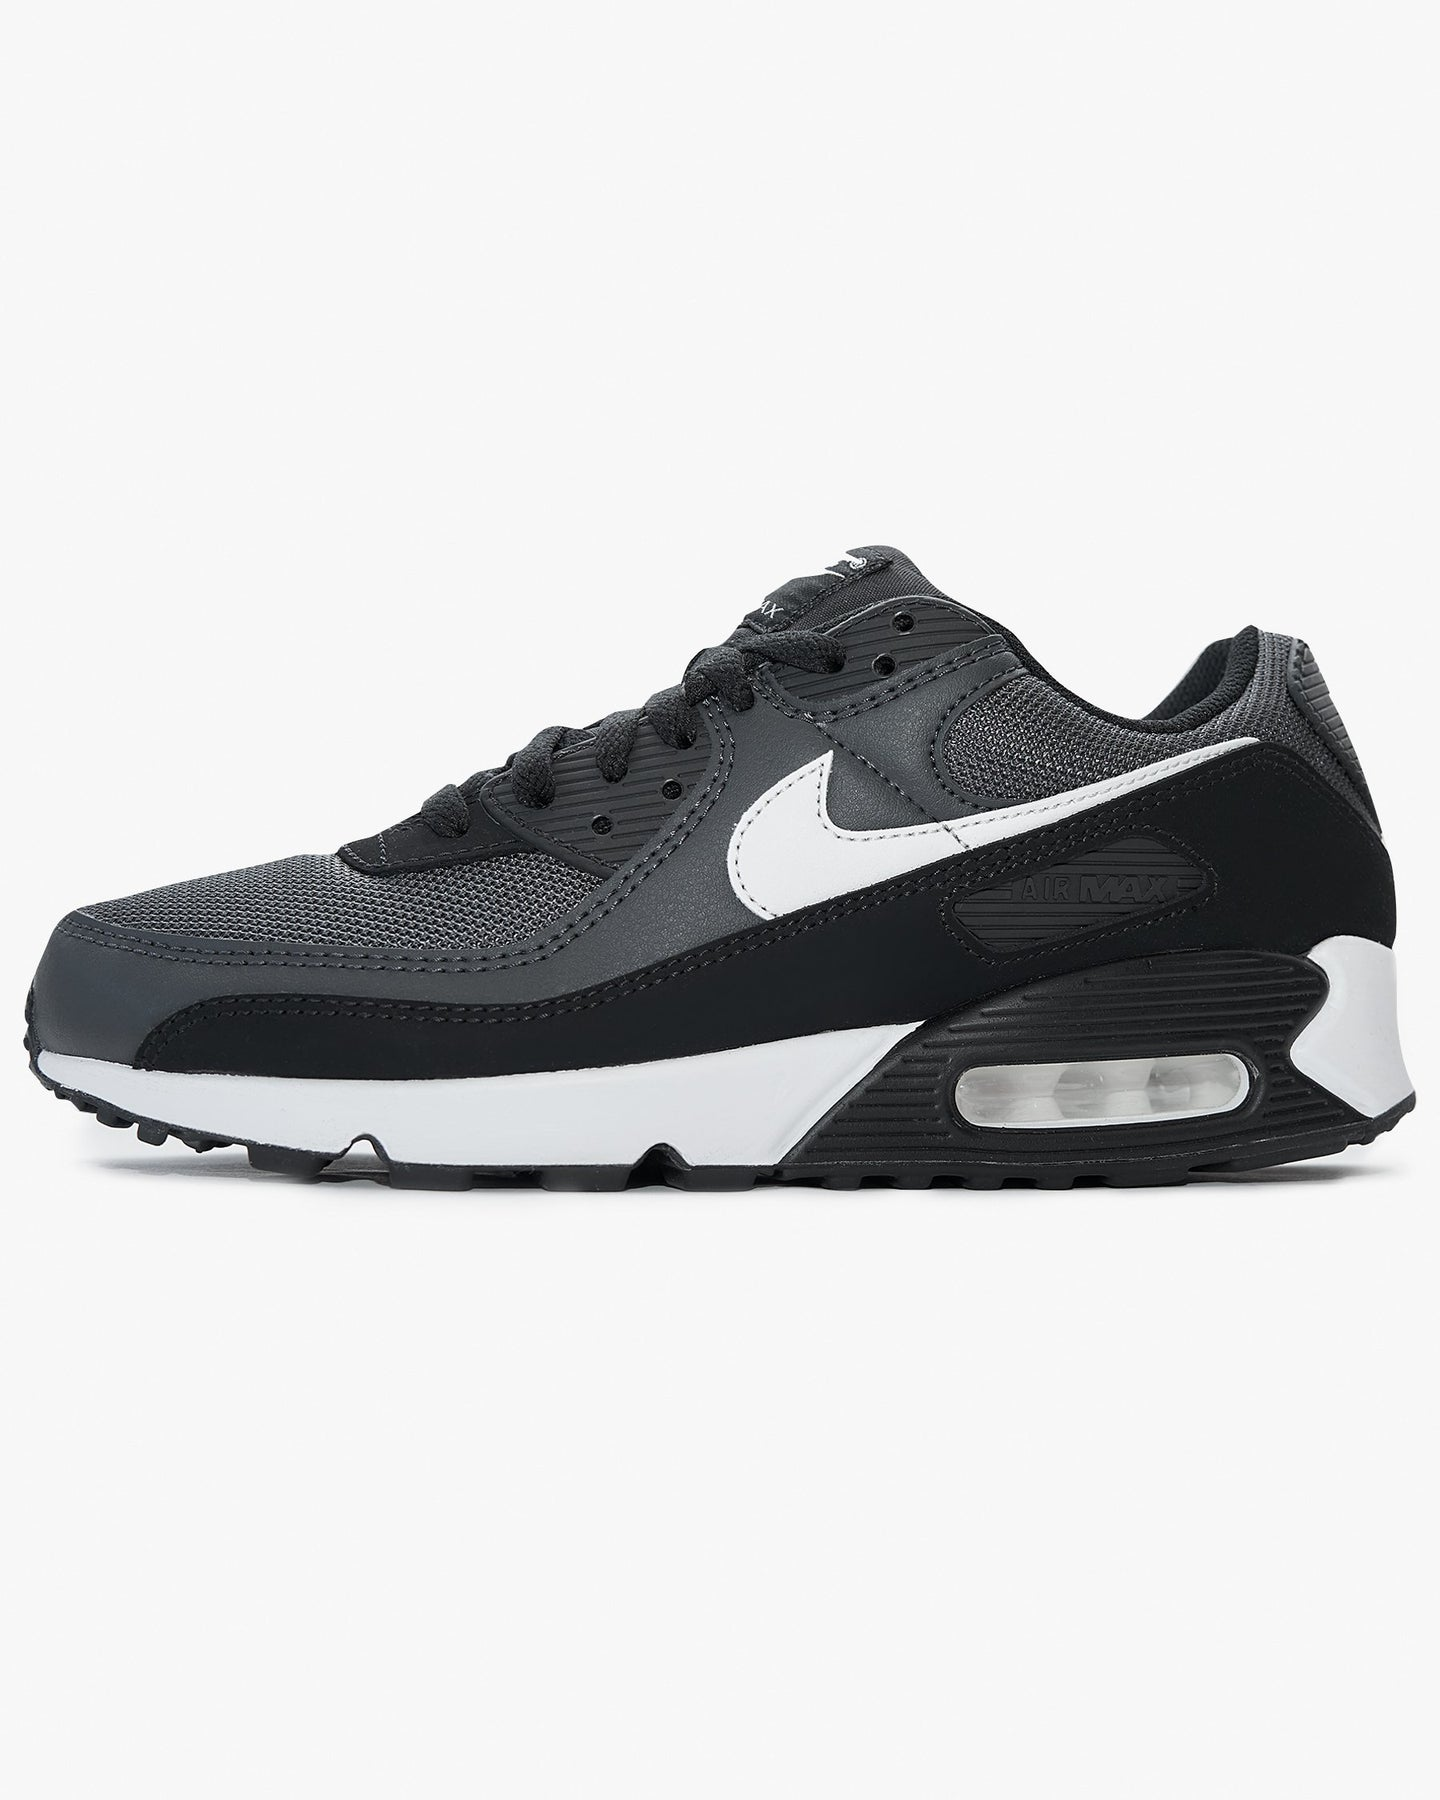 Nike Air Max 90 - Iron Grey / White / Black UK 6 CN84900026 Nike Trainers